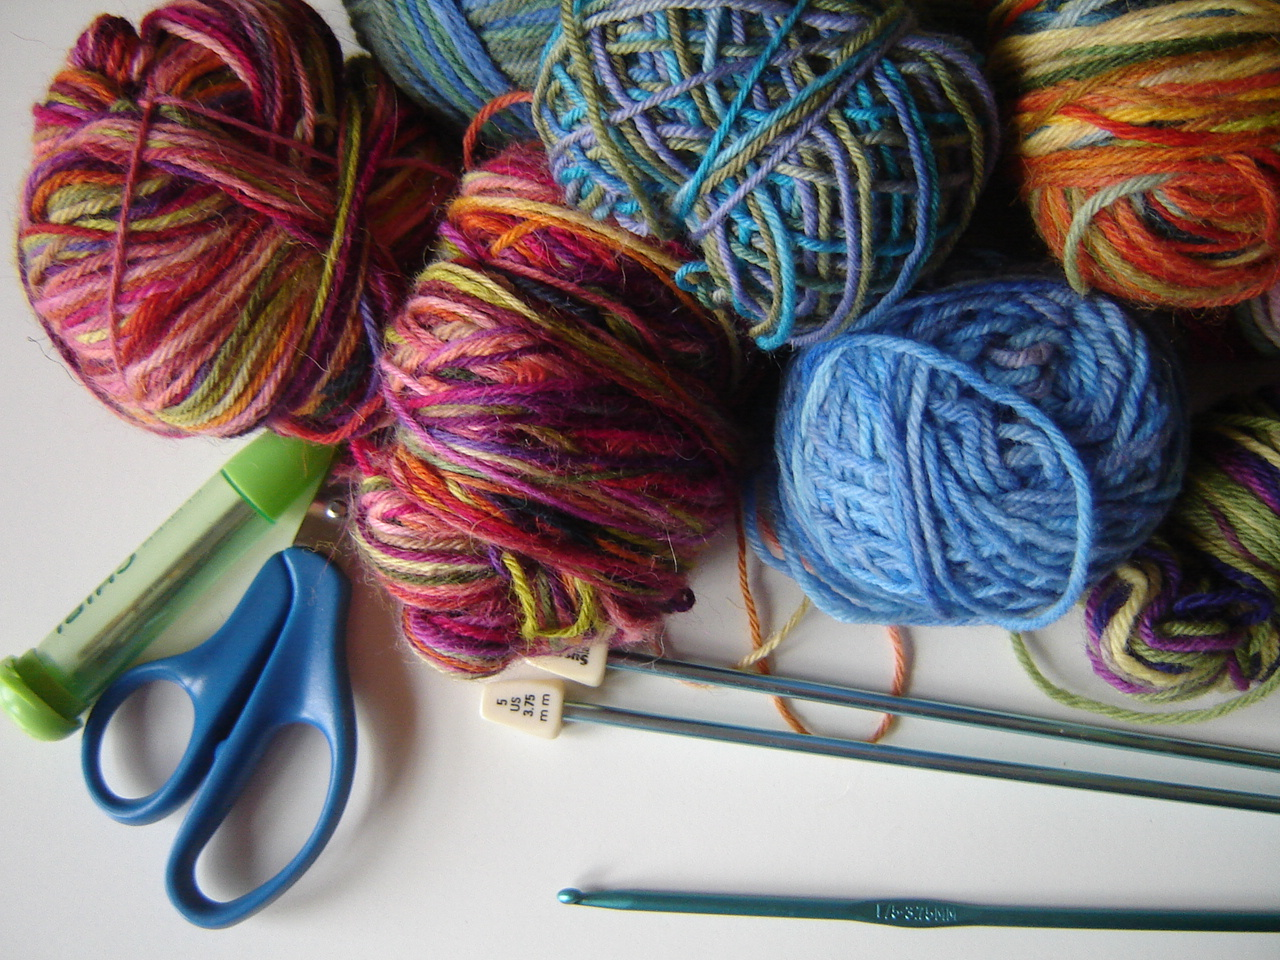 Yarn & Supplies : Maggie Weldon, Free Crochet Patterns